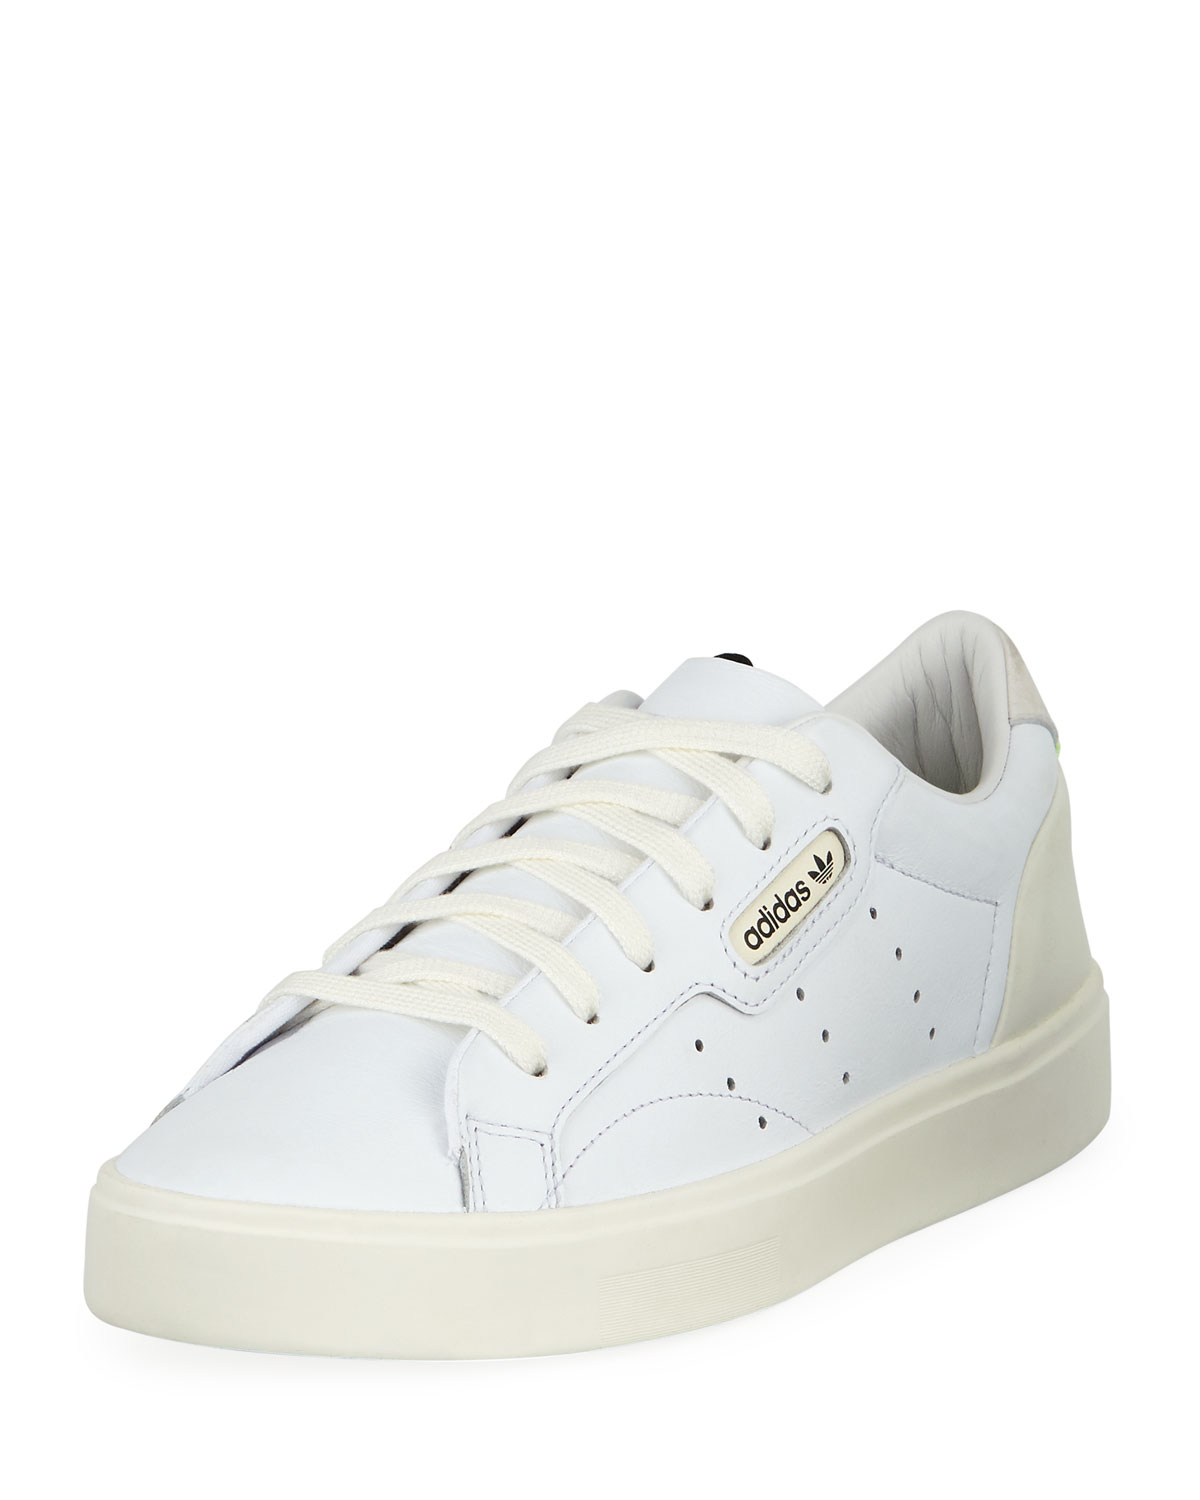 free shipping f118b c5983 Adidas Sleek Leather Low-Top Sneakers